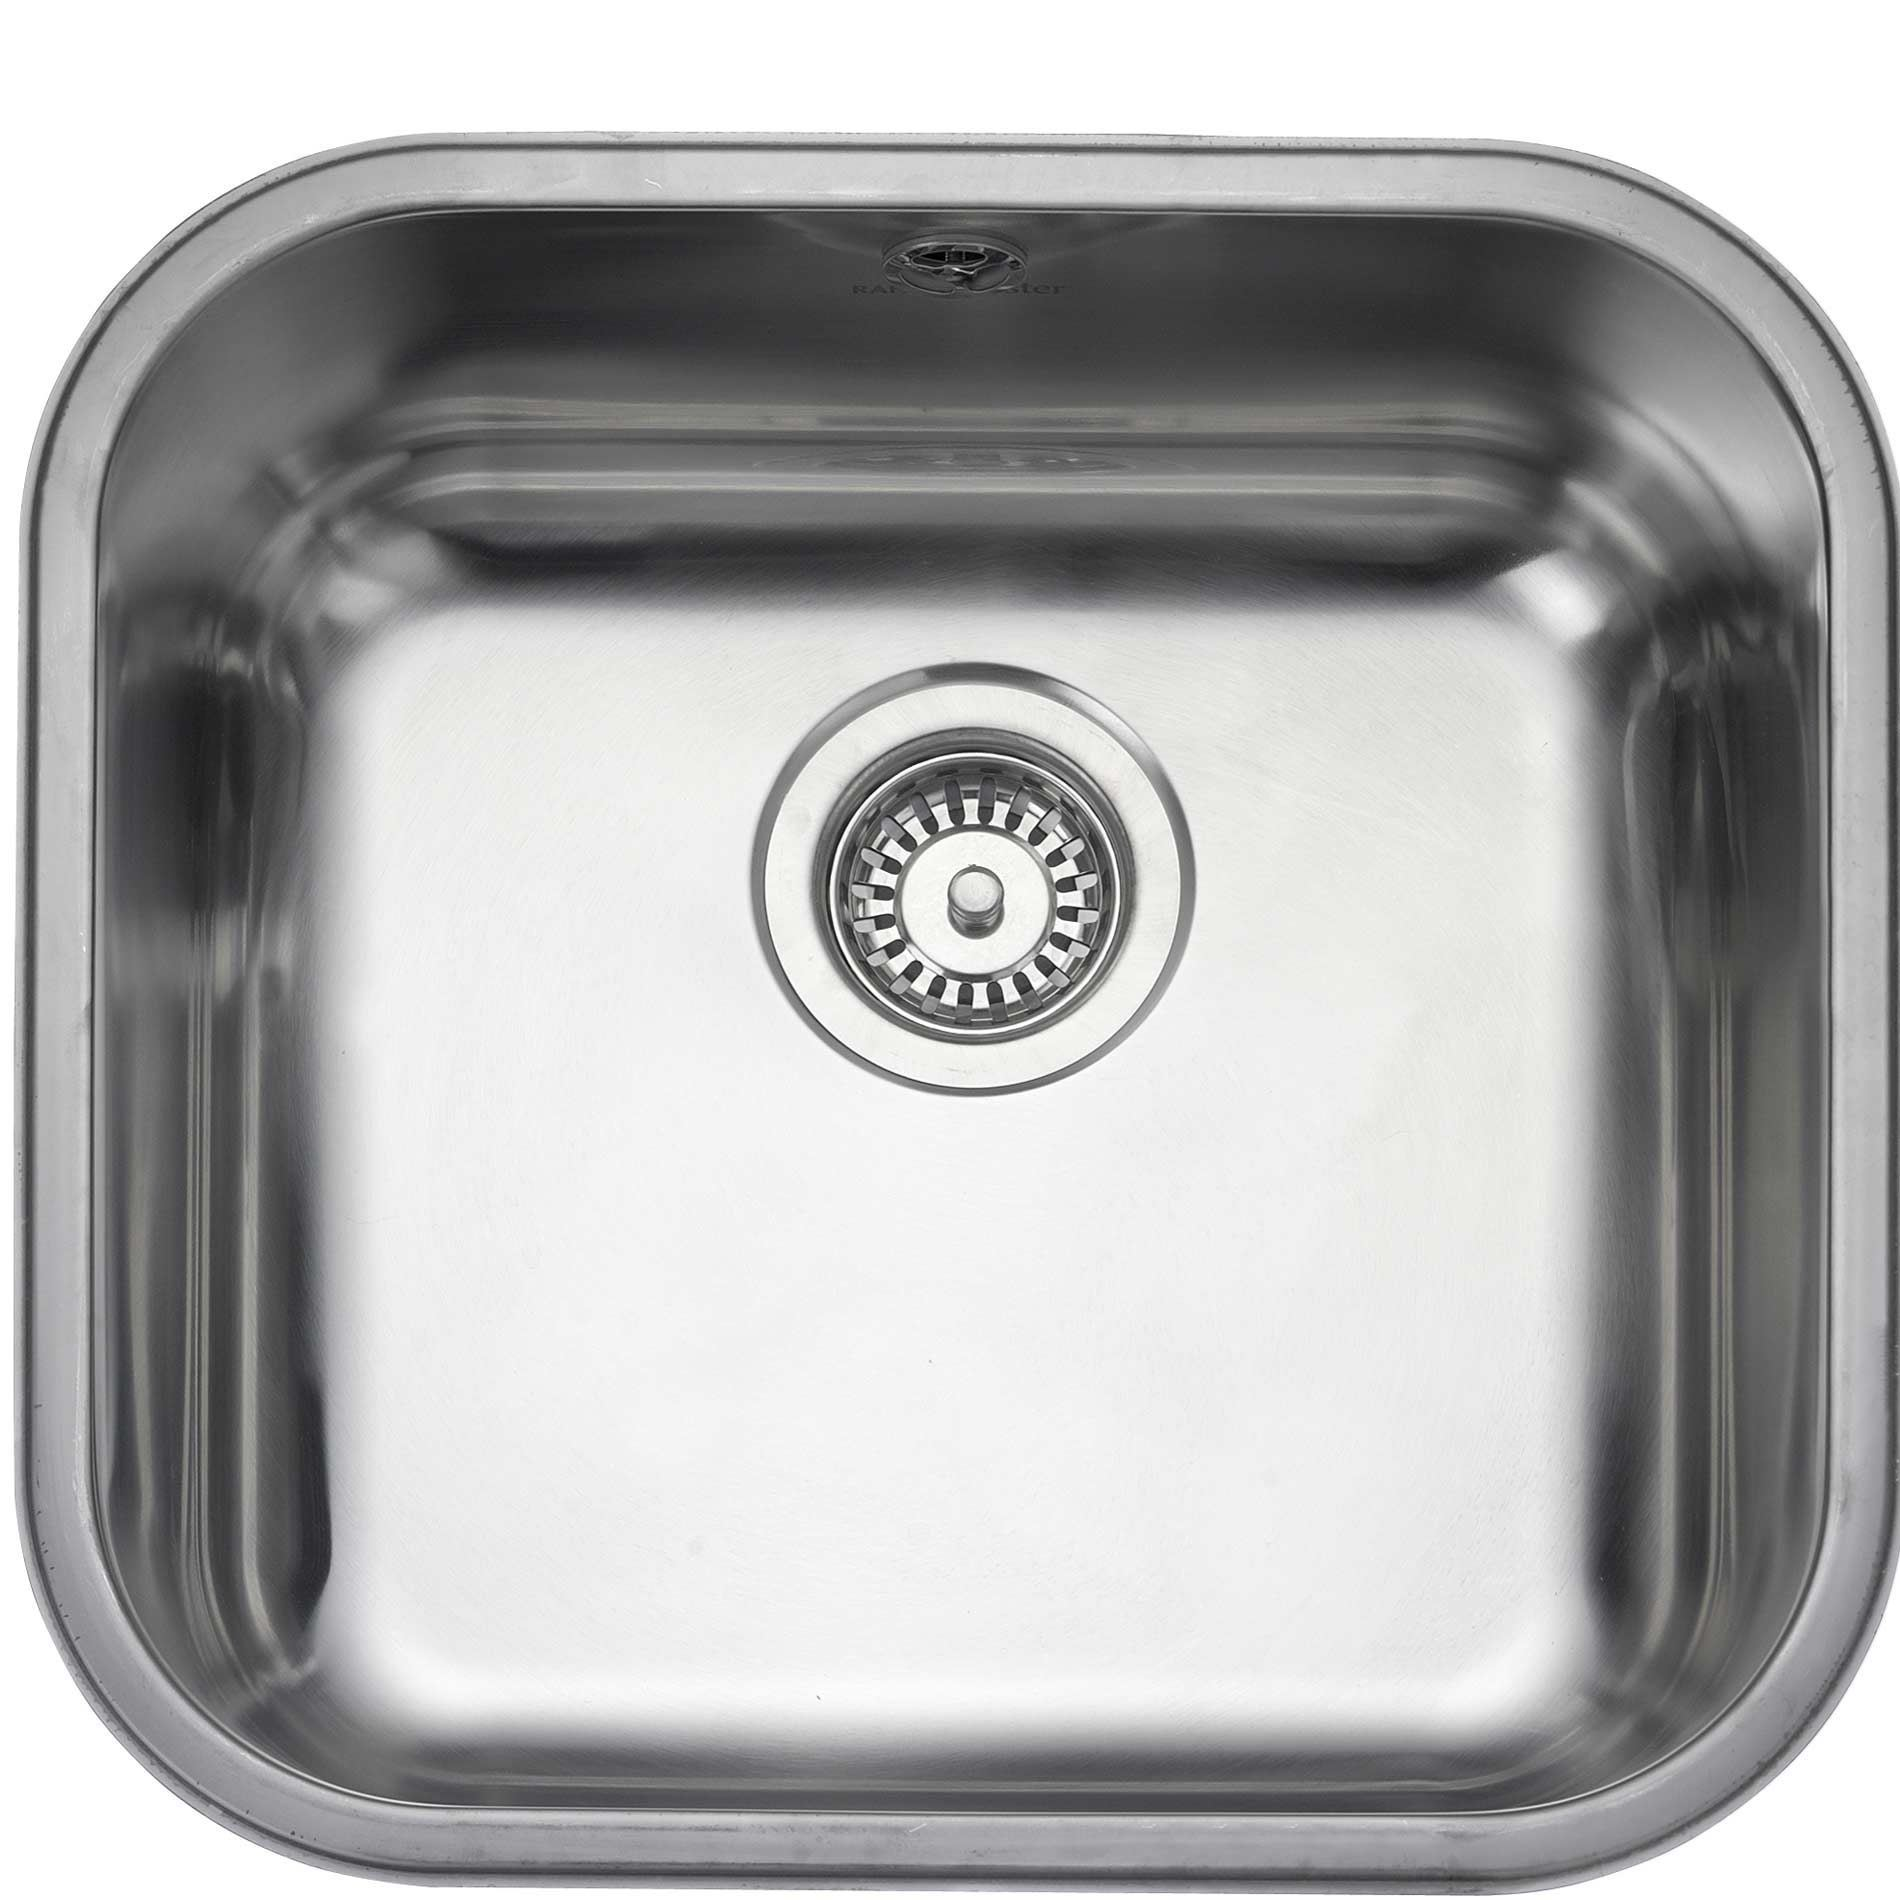 Picture of Atlantic Classic UB40 Stainless Steel Sink